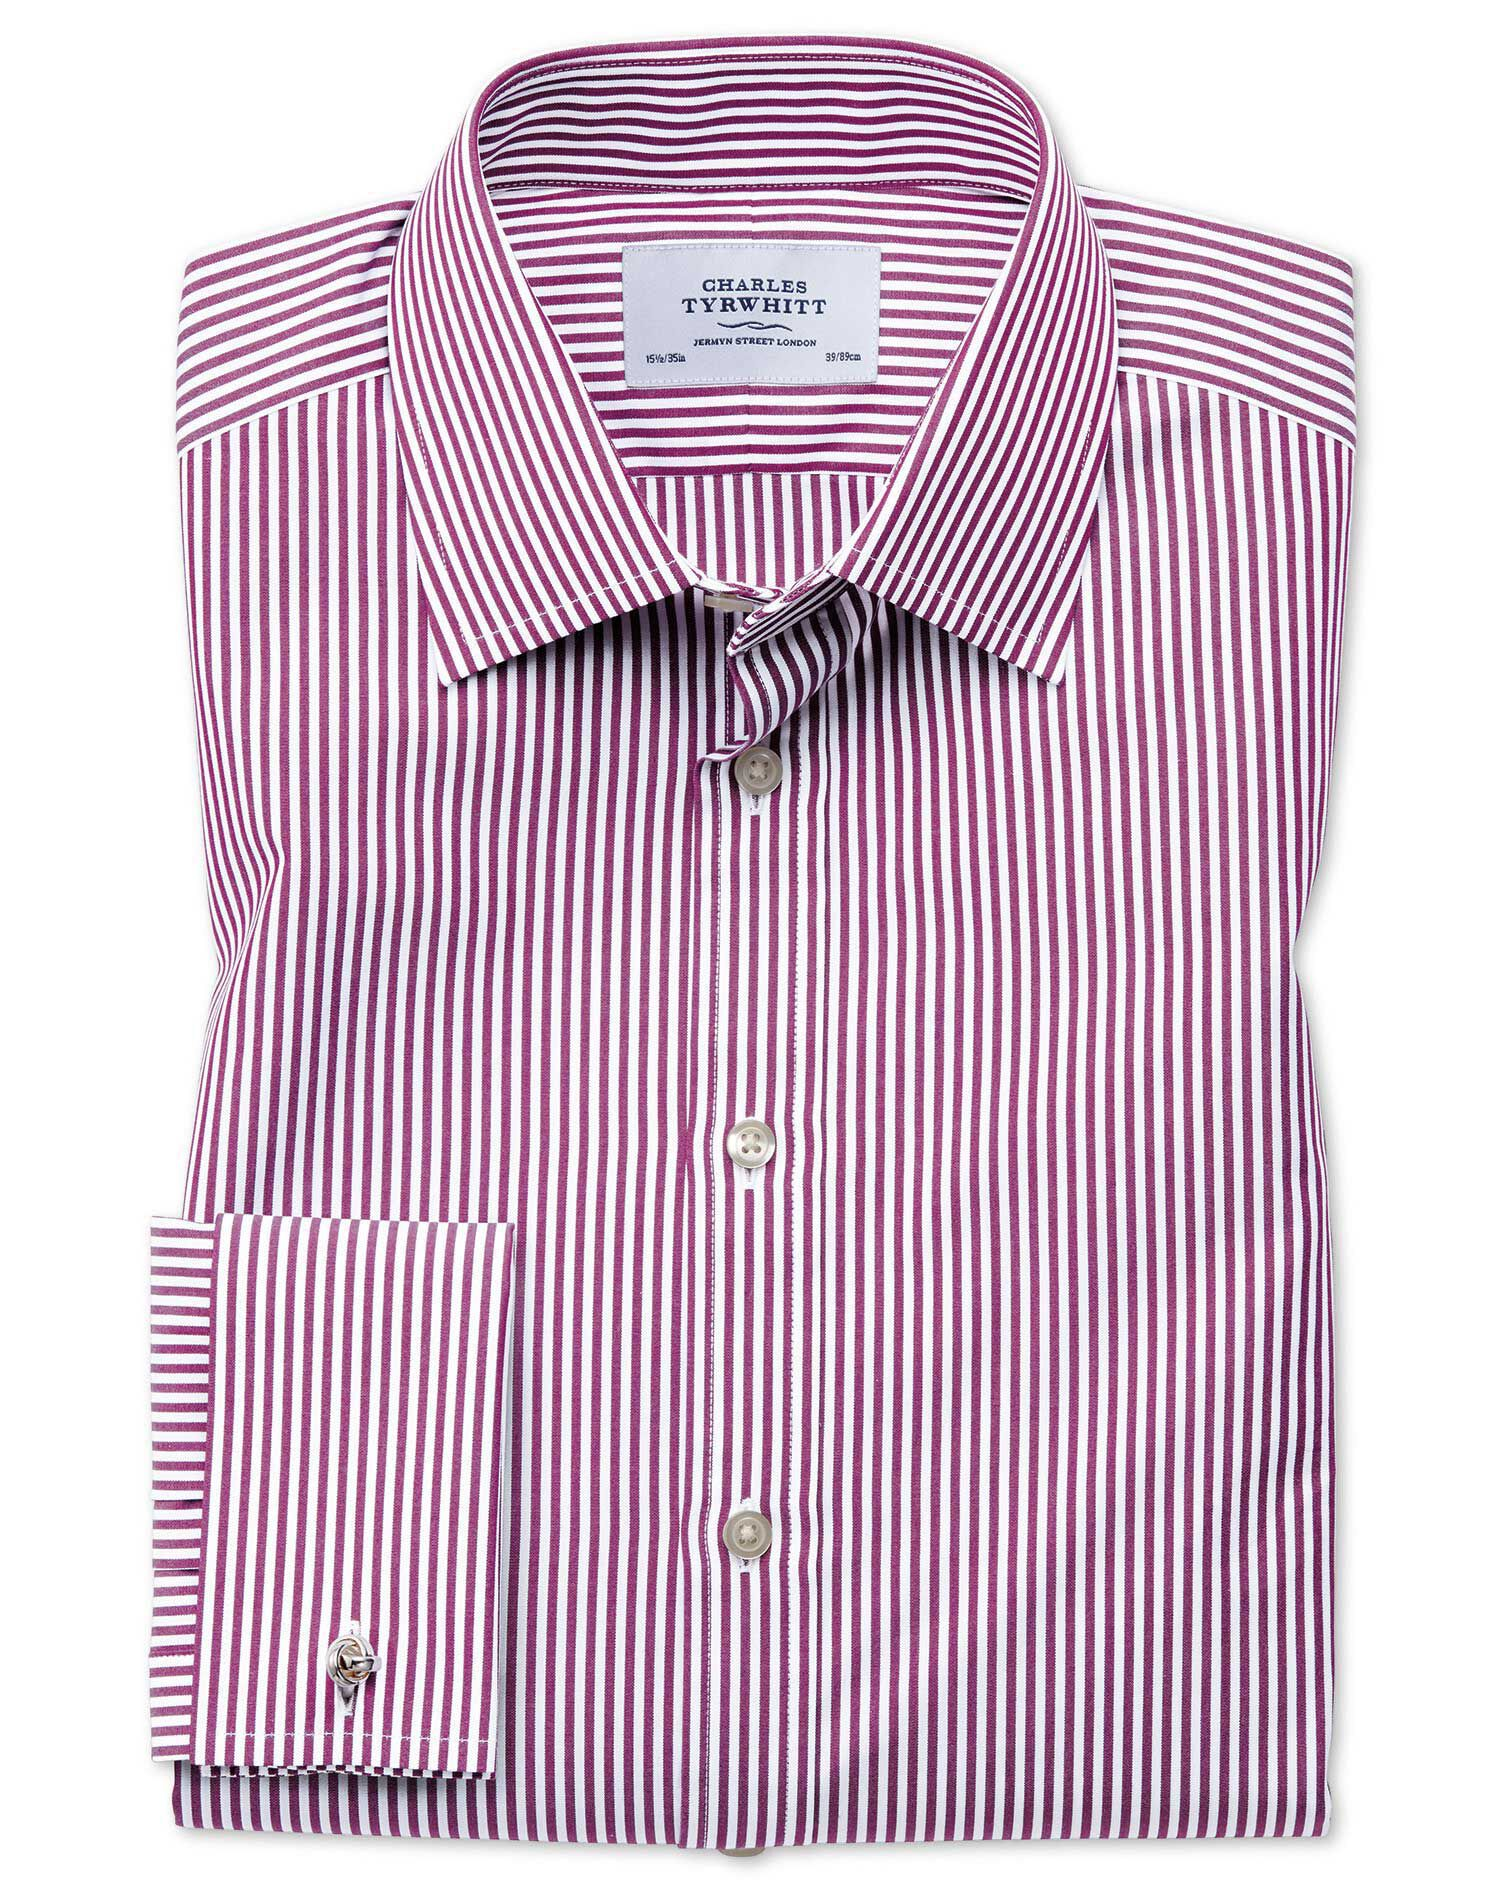 Slim Fit Bengal Stripe Purple Cotton Formal Shirt Double Cuff Size 17.5/35 by Charles Tyrwhitt